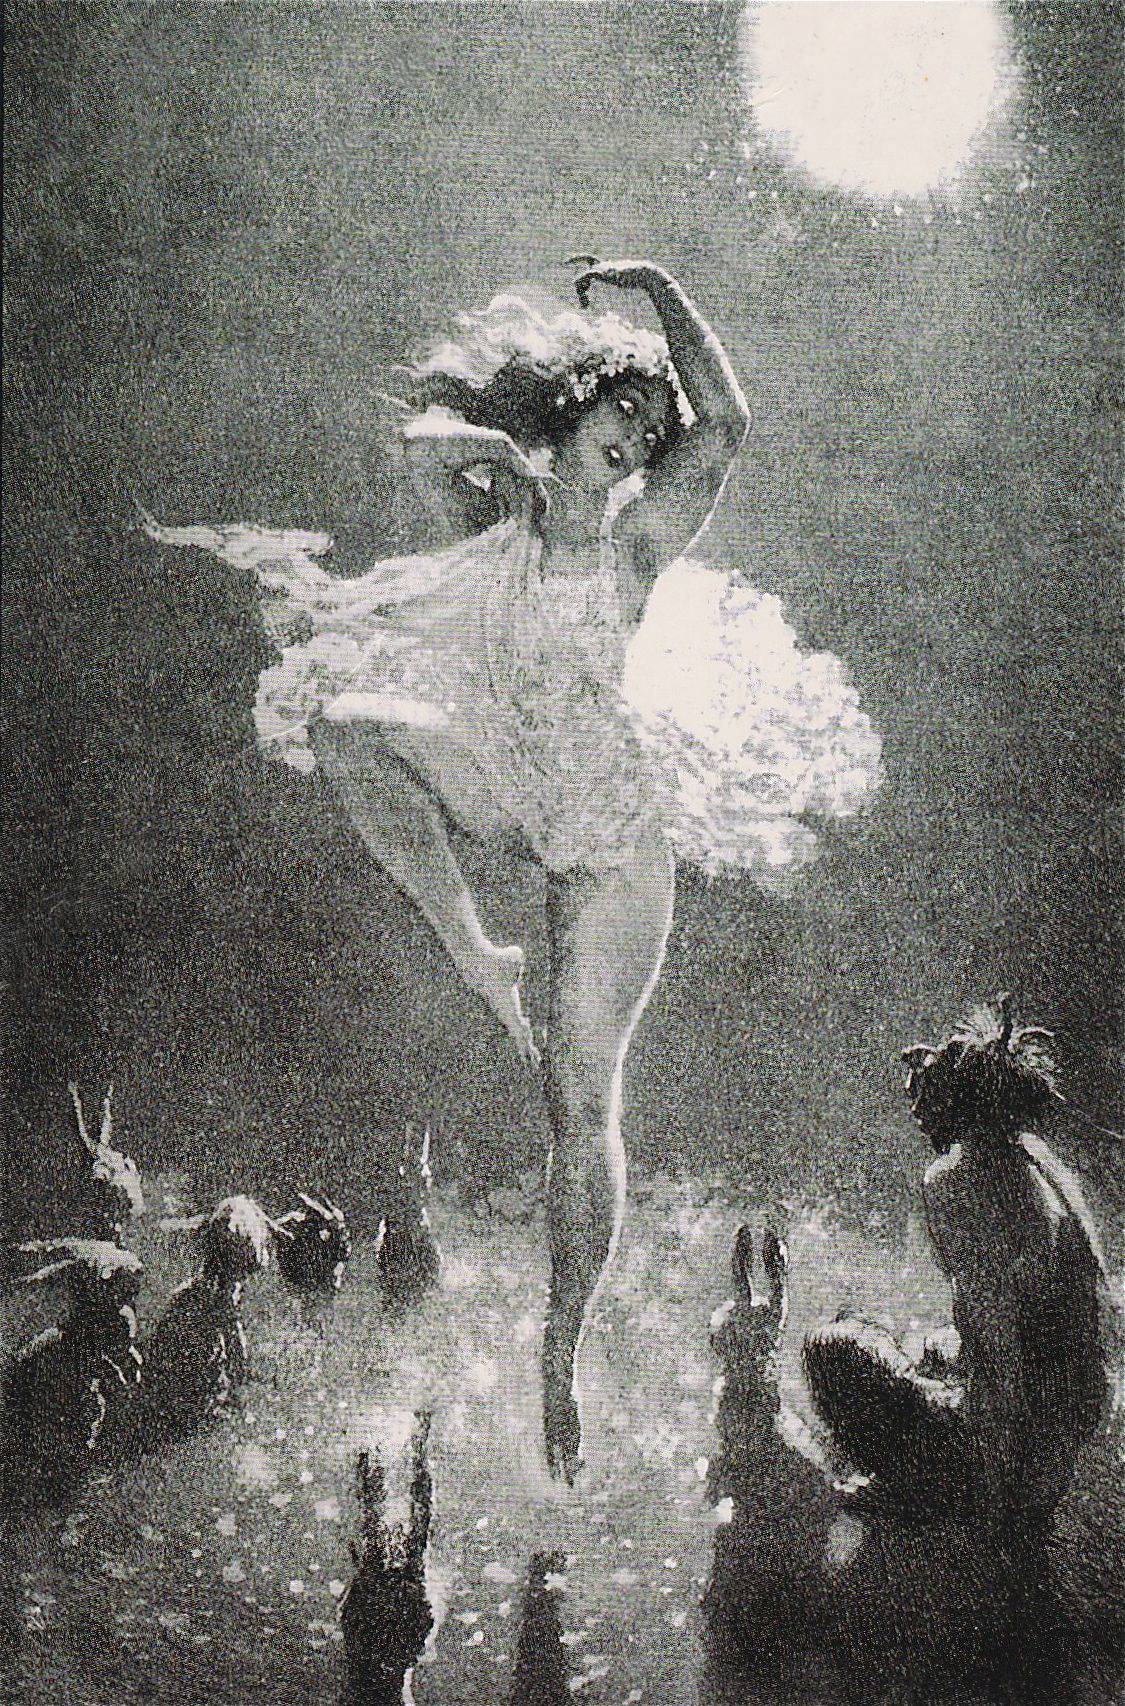 Norman Lindsay - The Audience, 1925